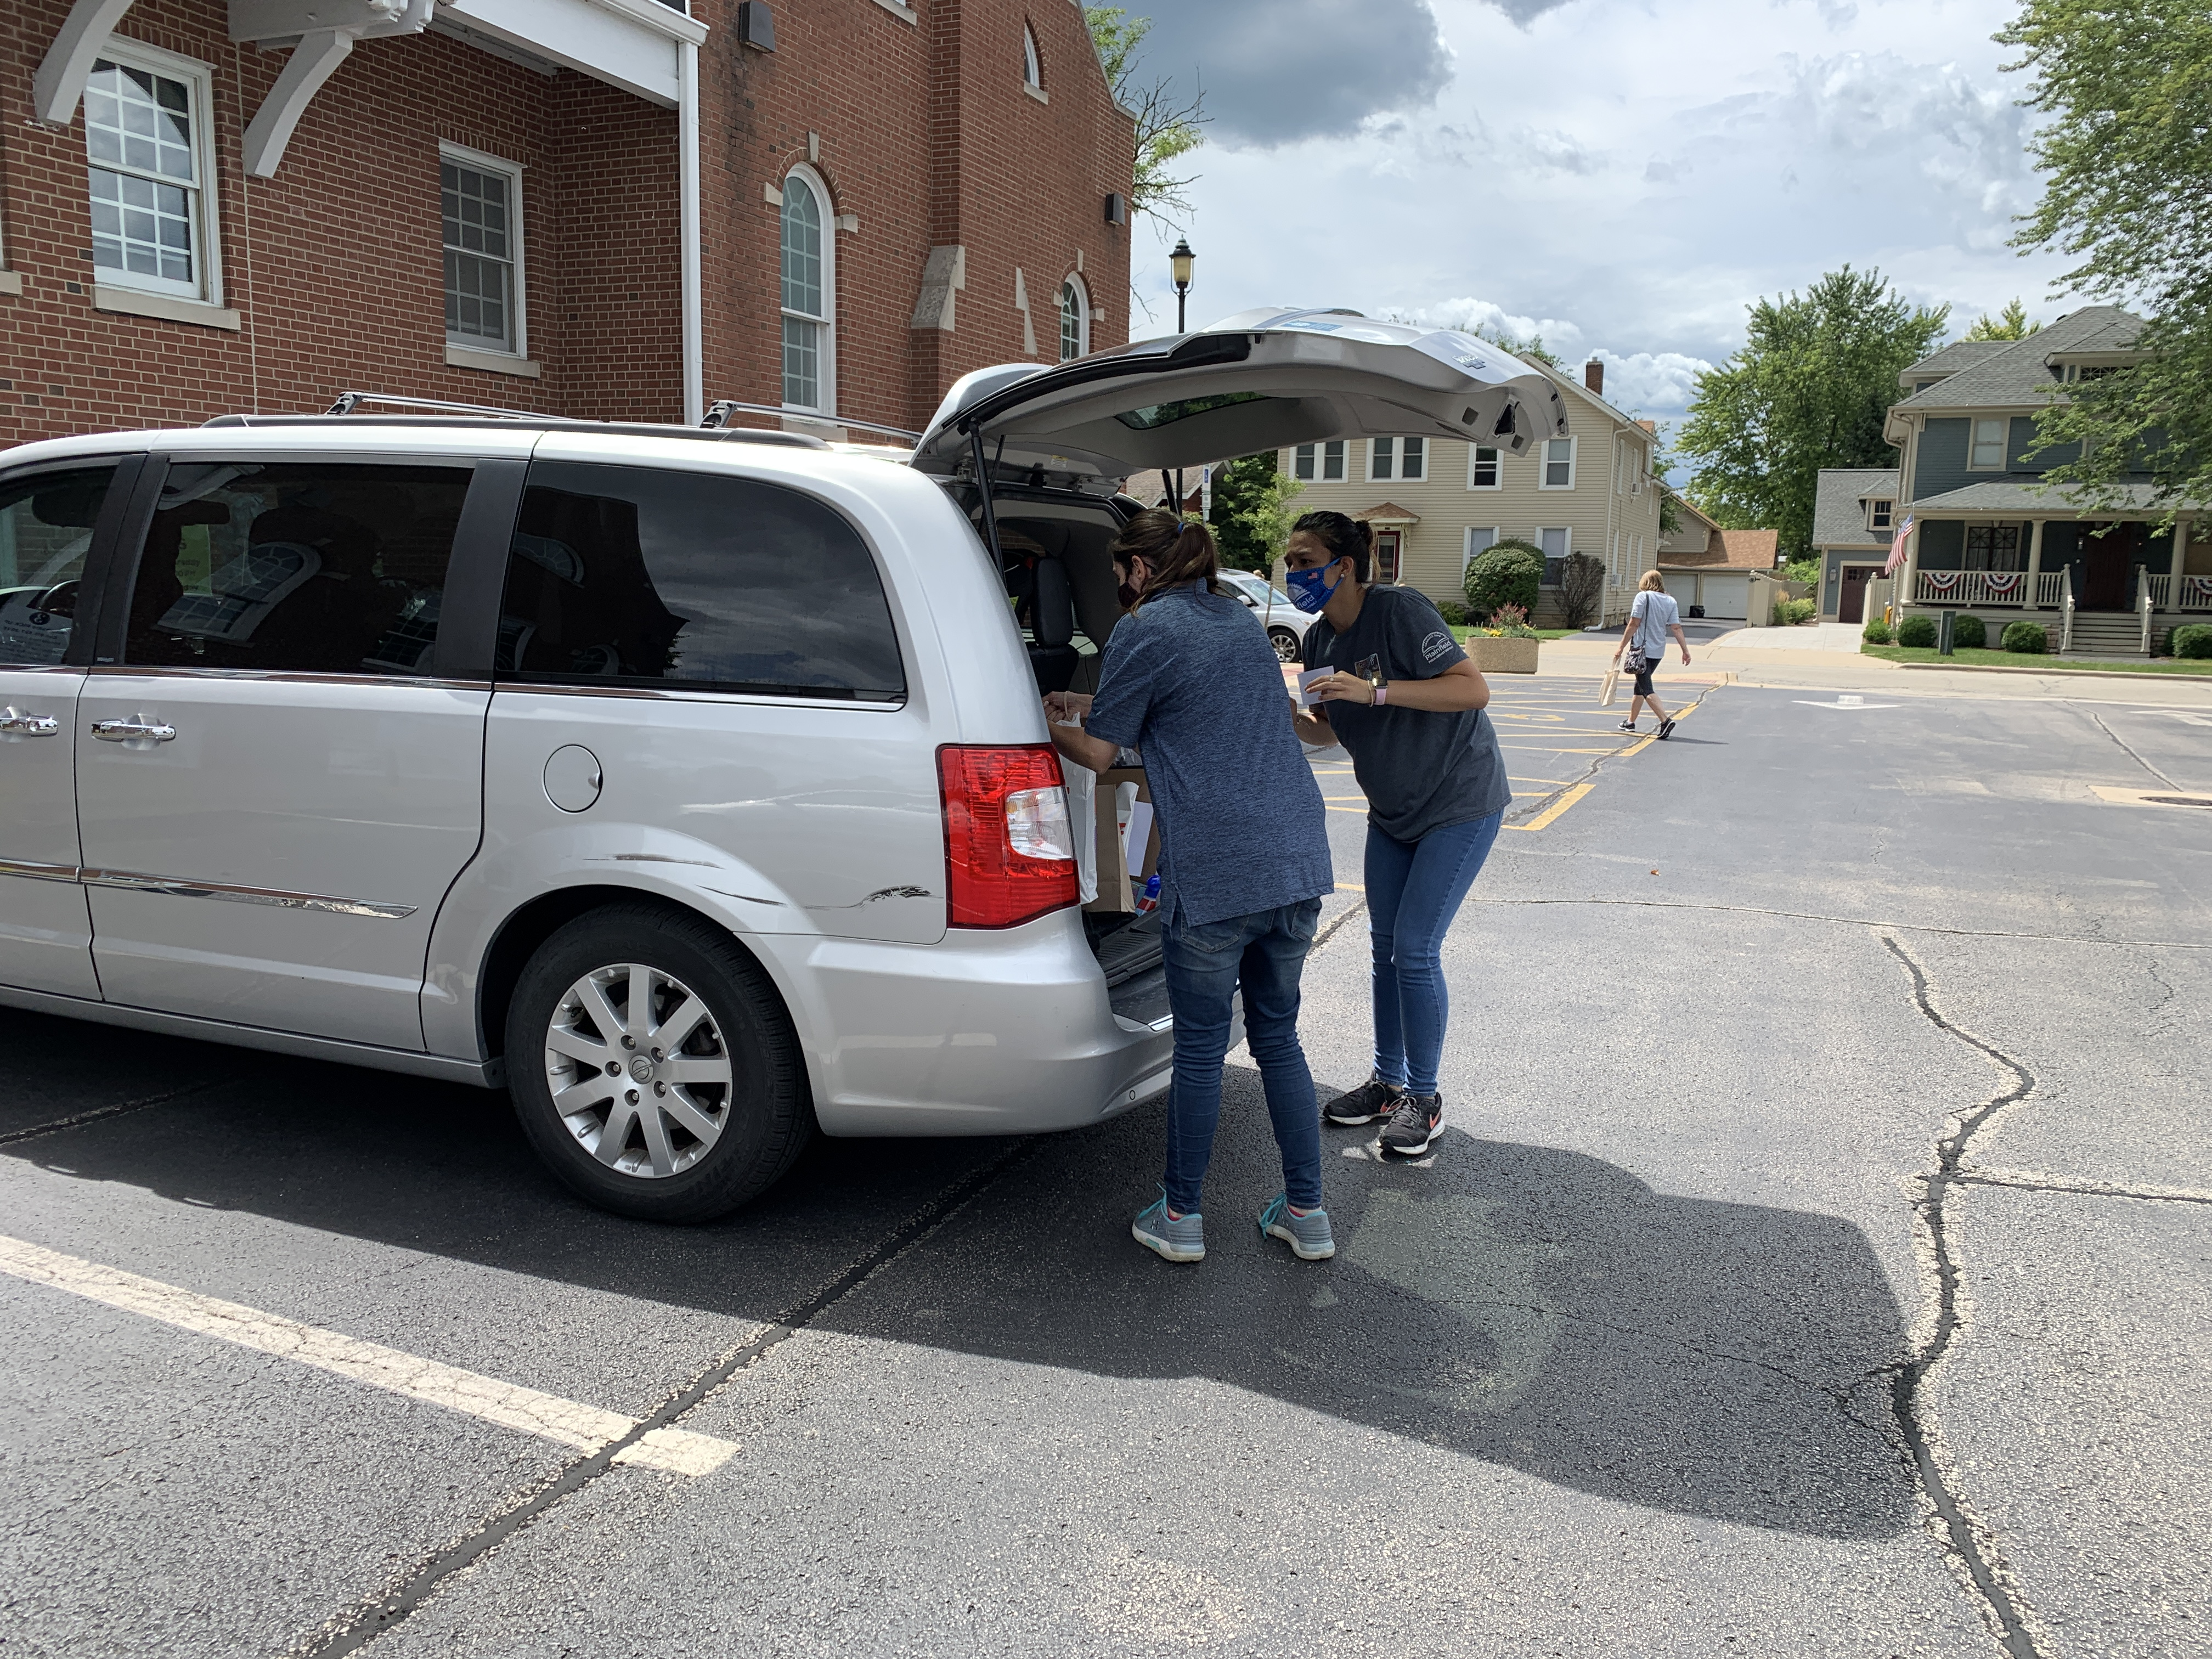 Staff loading a car with materials during curbside delivery